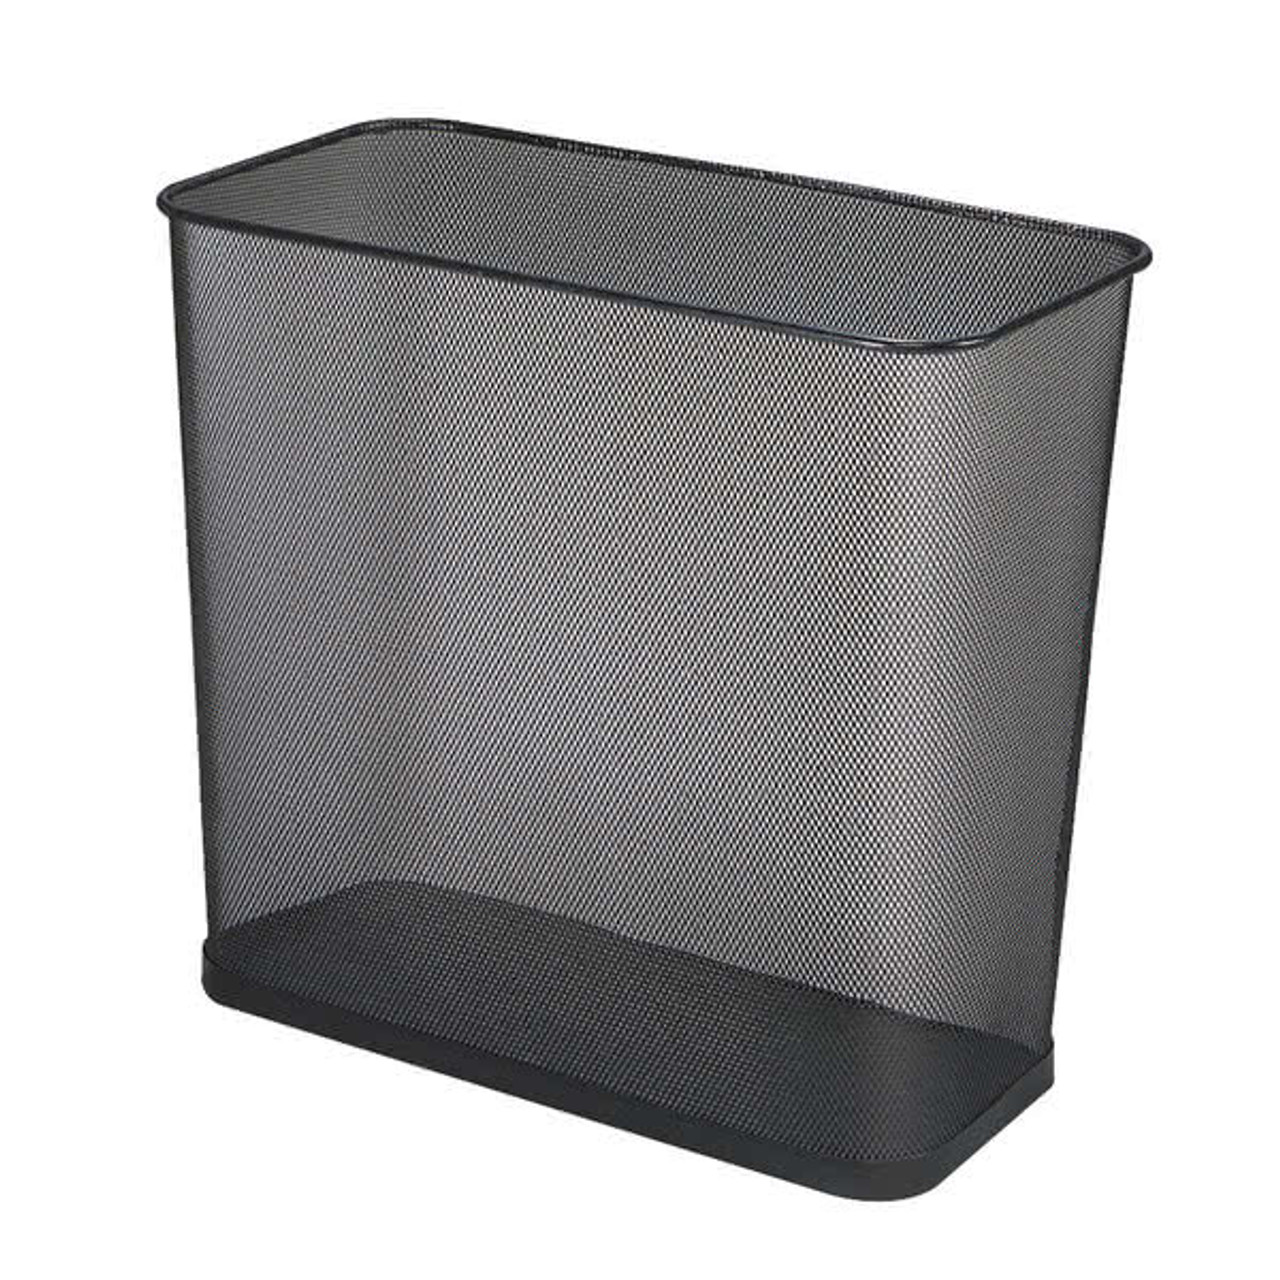 Rubbermaid Concept Collection Rectangular